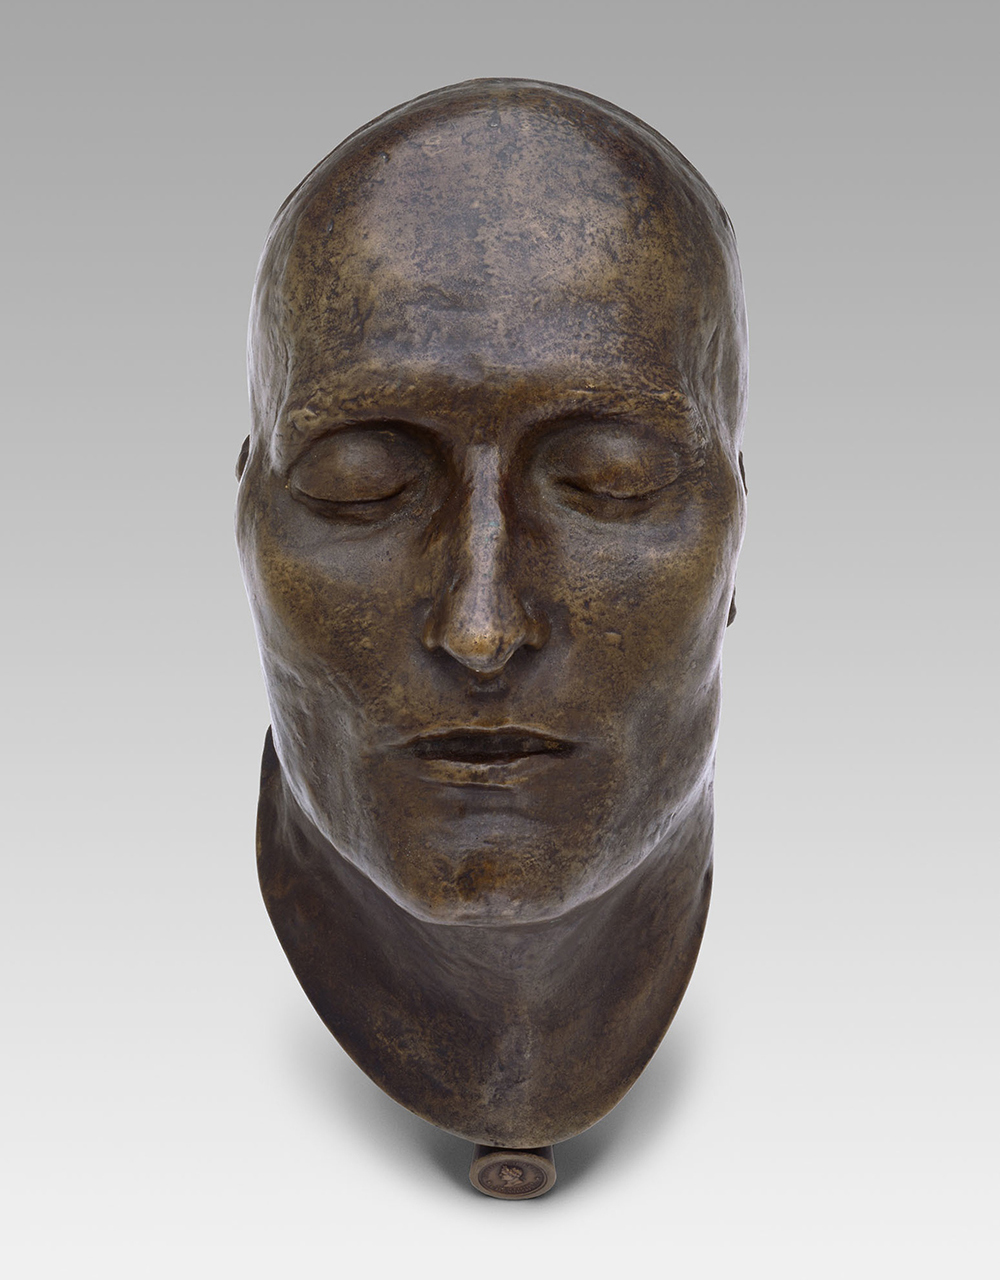 Death mask of Napoleon by Dr. C. Francesco Antommarchi and Louis Richard and E. Quesnel, modeled in 1821 and cast in 1833. The Art Institute of Chicago, Estate of E. Blake Blair.